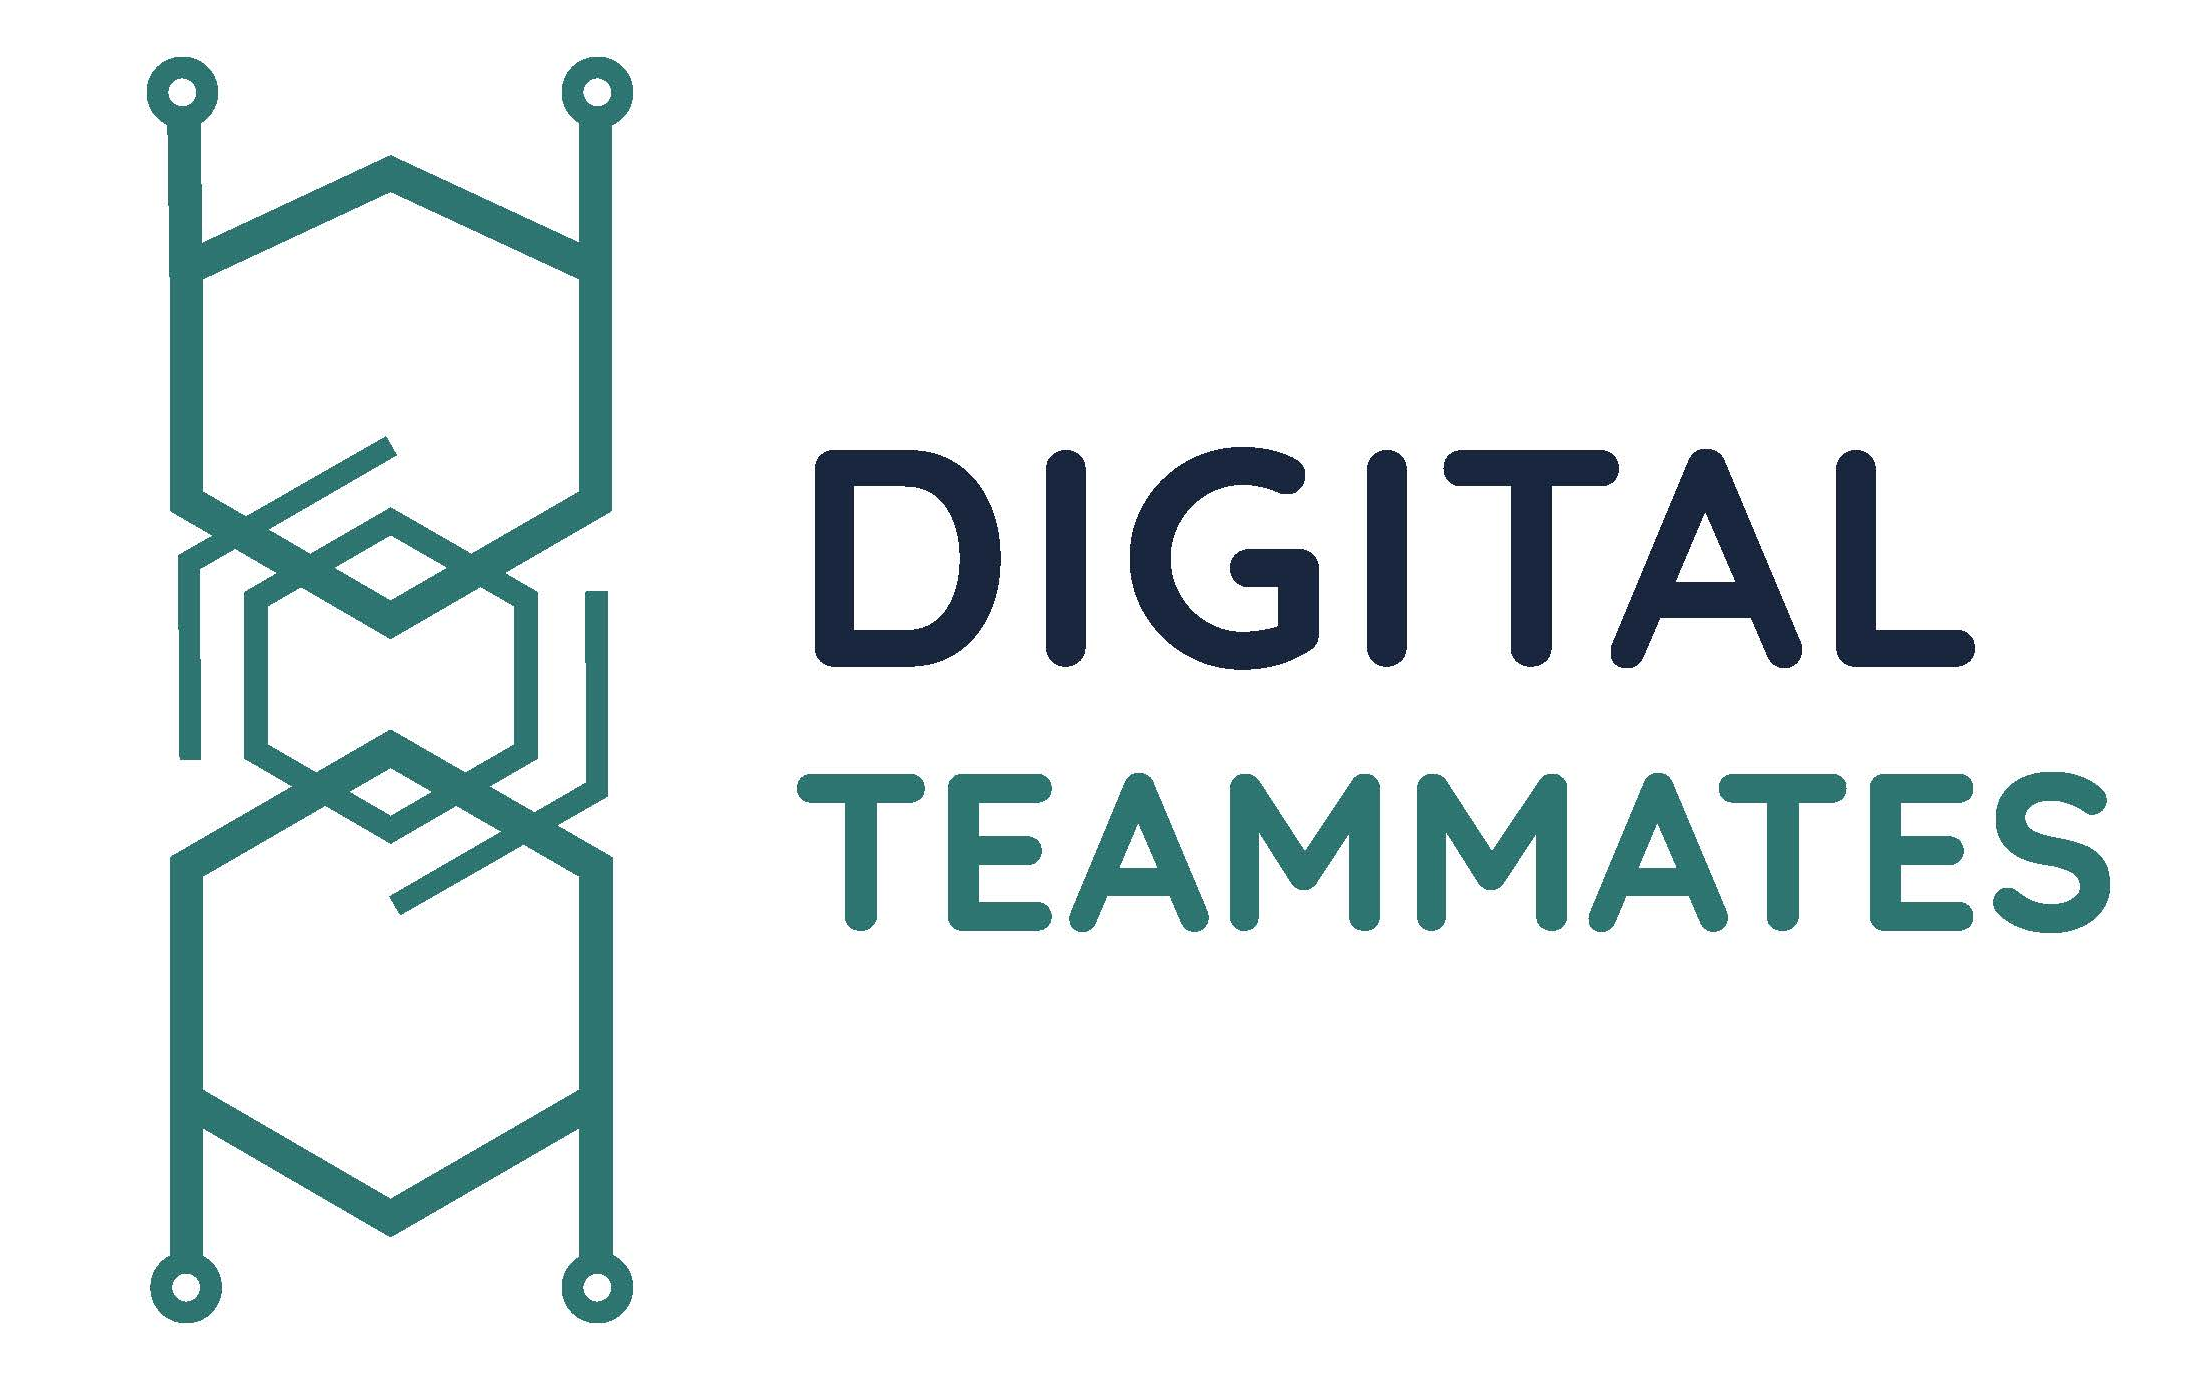 Digital Teammates